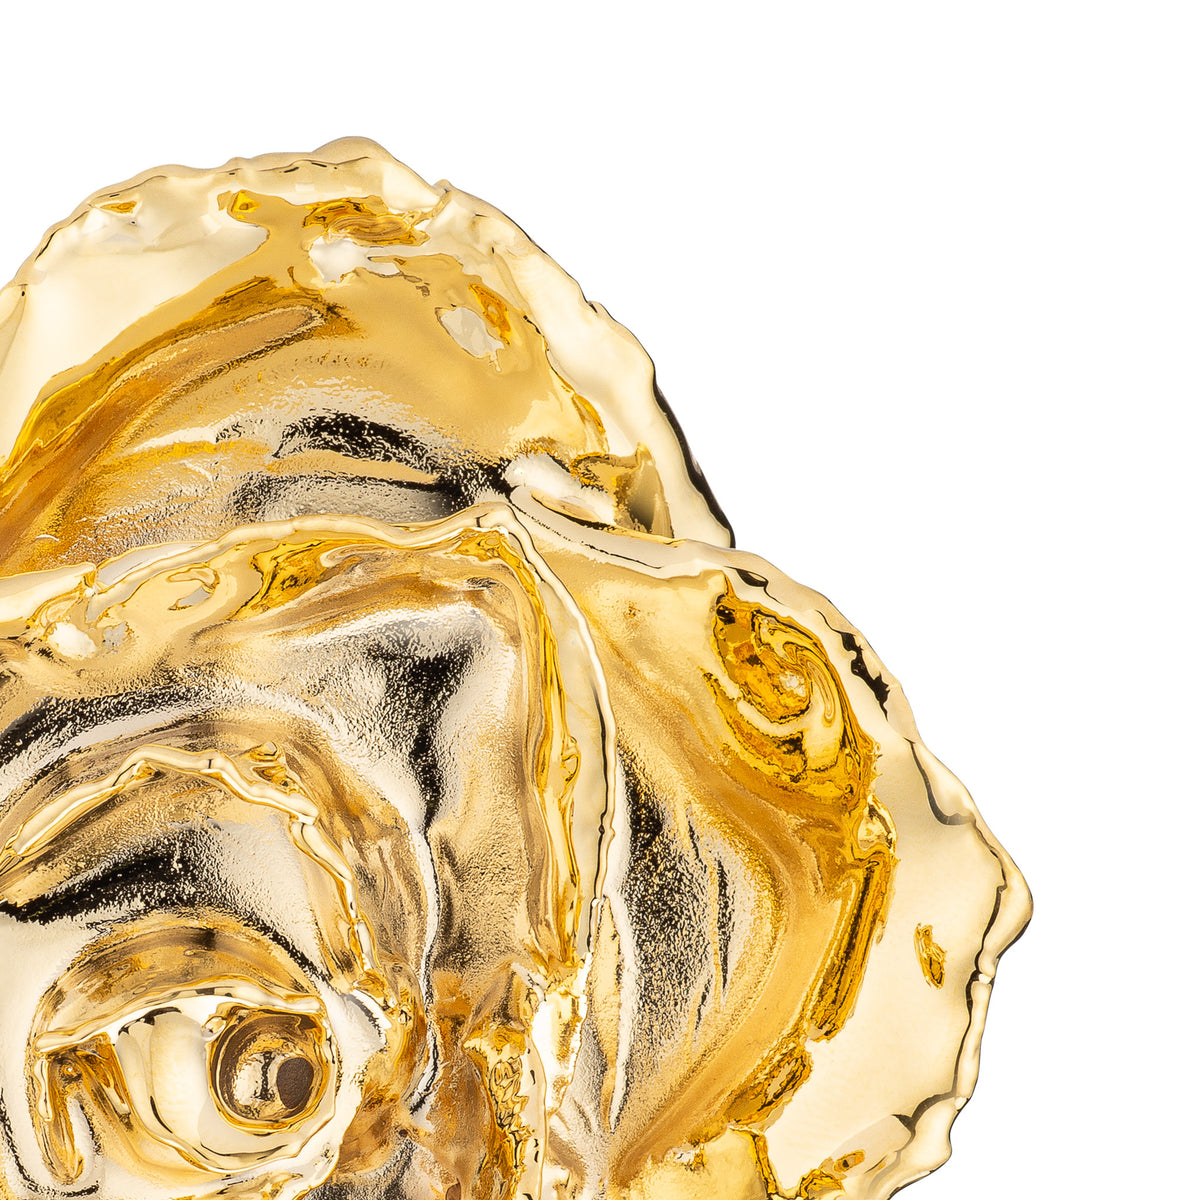 Real 24K Gold Forever Rose. Rose is fully dipped in gold. View shows the rose petals, sepals, stem, and leaves covered in 24 karat gold. This view is a close up view from the top.